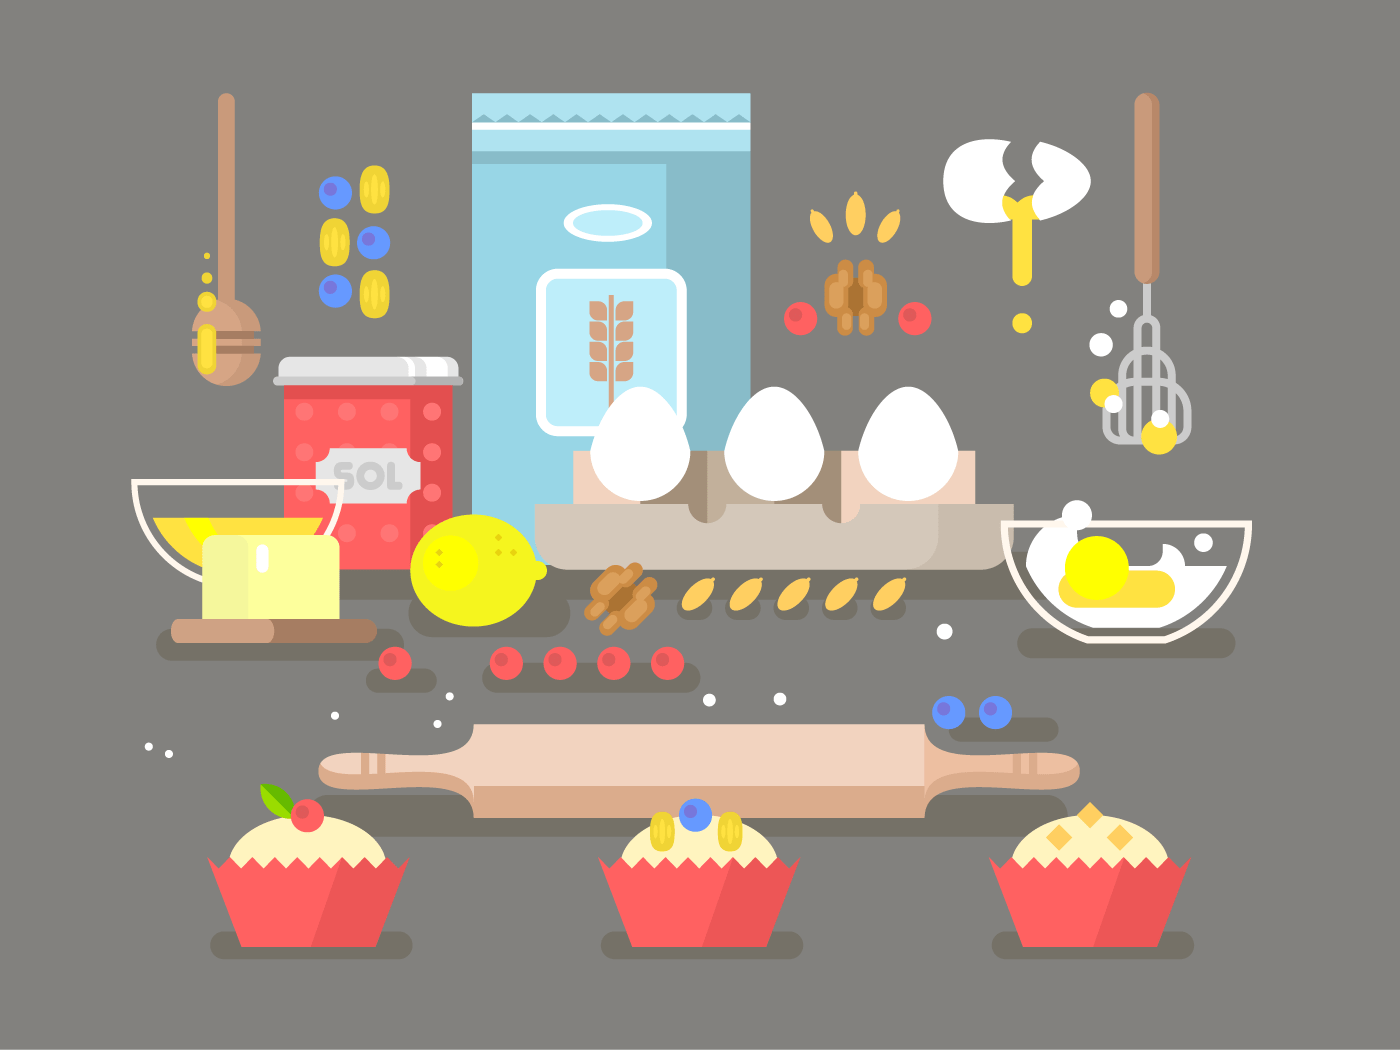 Preparation of baking ingredients flat vector illustration